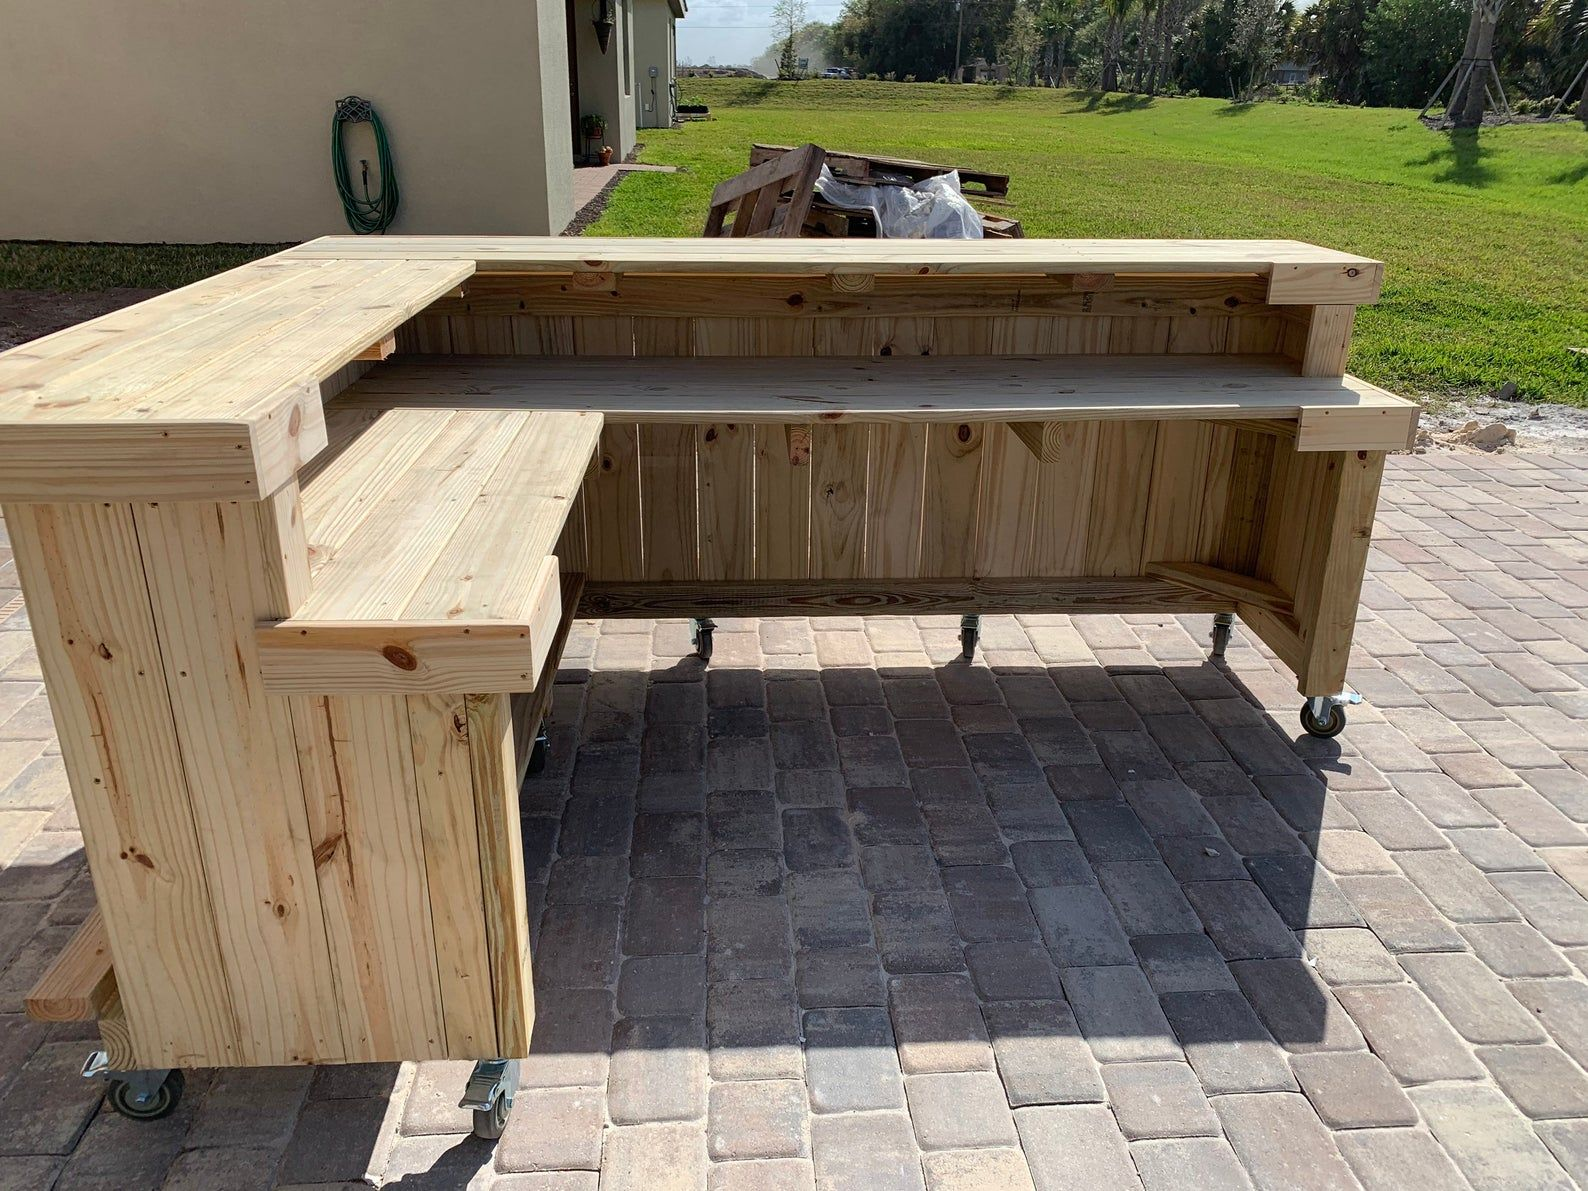 Kitchen L Shaped 2 Level 8 X 6 Rustic Real Pressure Treated Wood Barn Wood Style Pallet Style Outdoor Or Indoor Patio Bar In 2020 Outdoor Patio Bar Patio Bar Indoor Patio